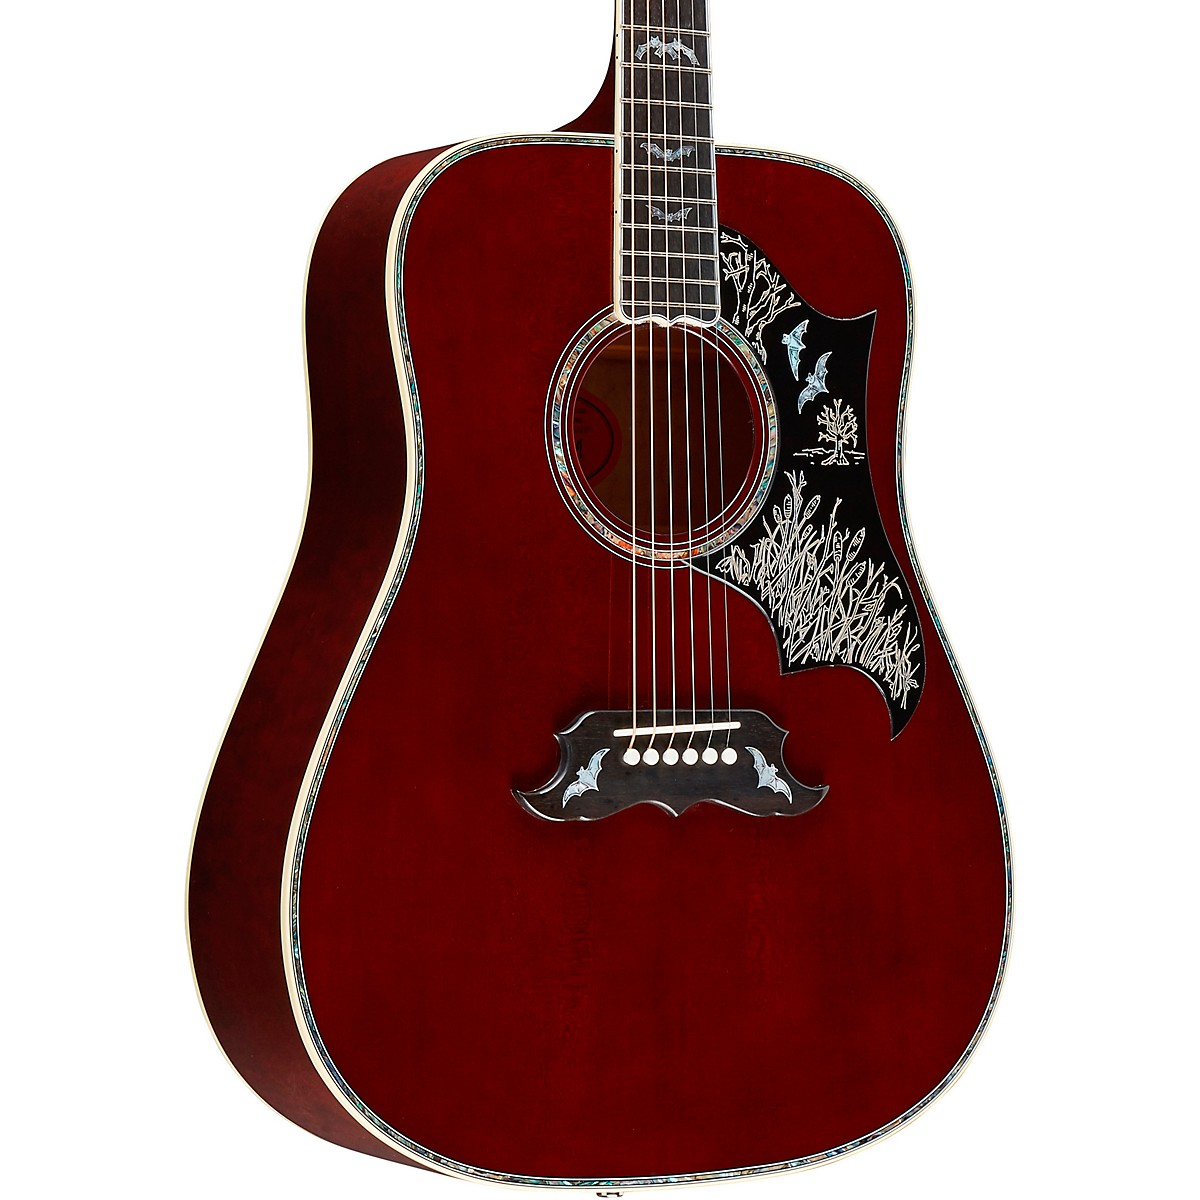 Gibson Bats in Flight Acoustic Guitar